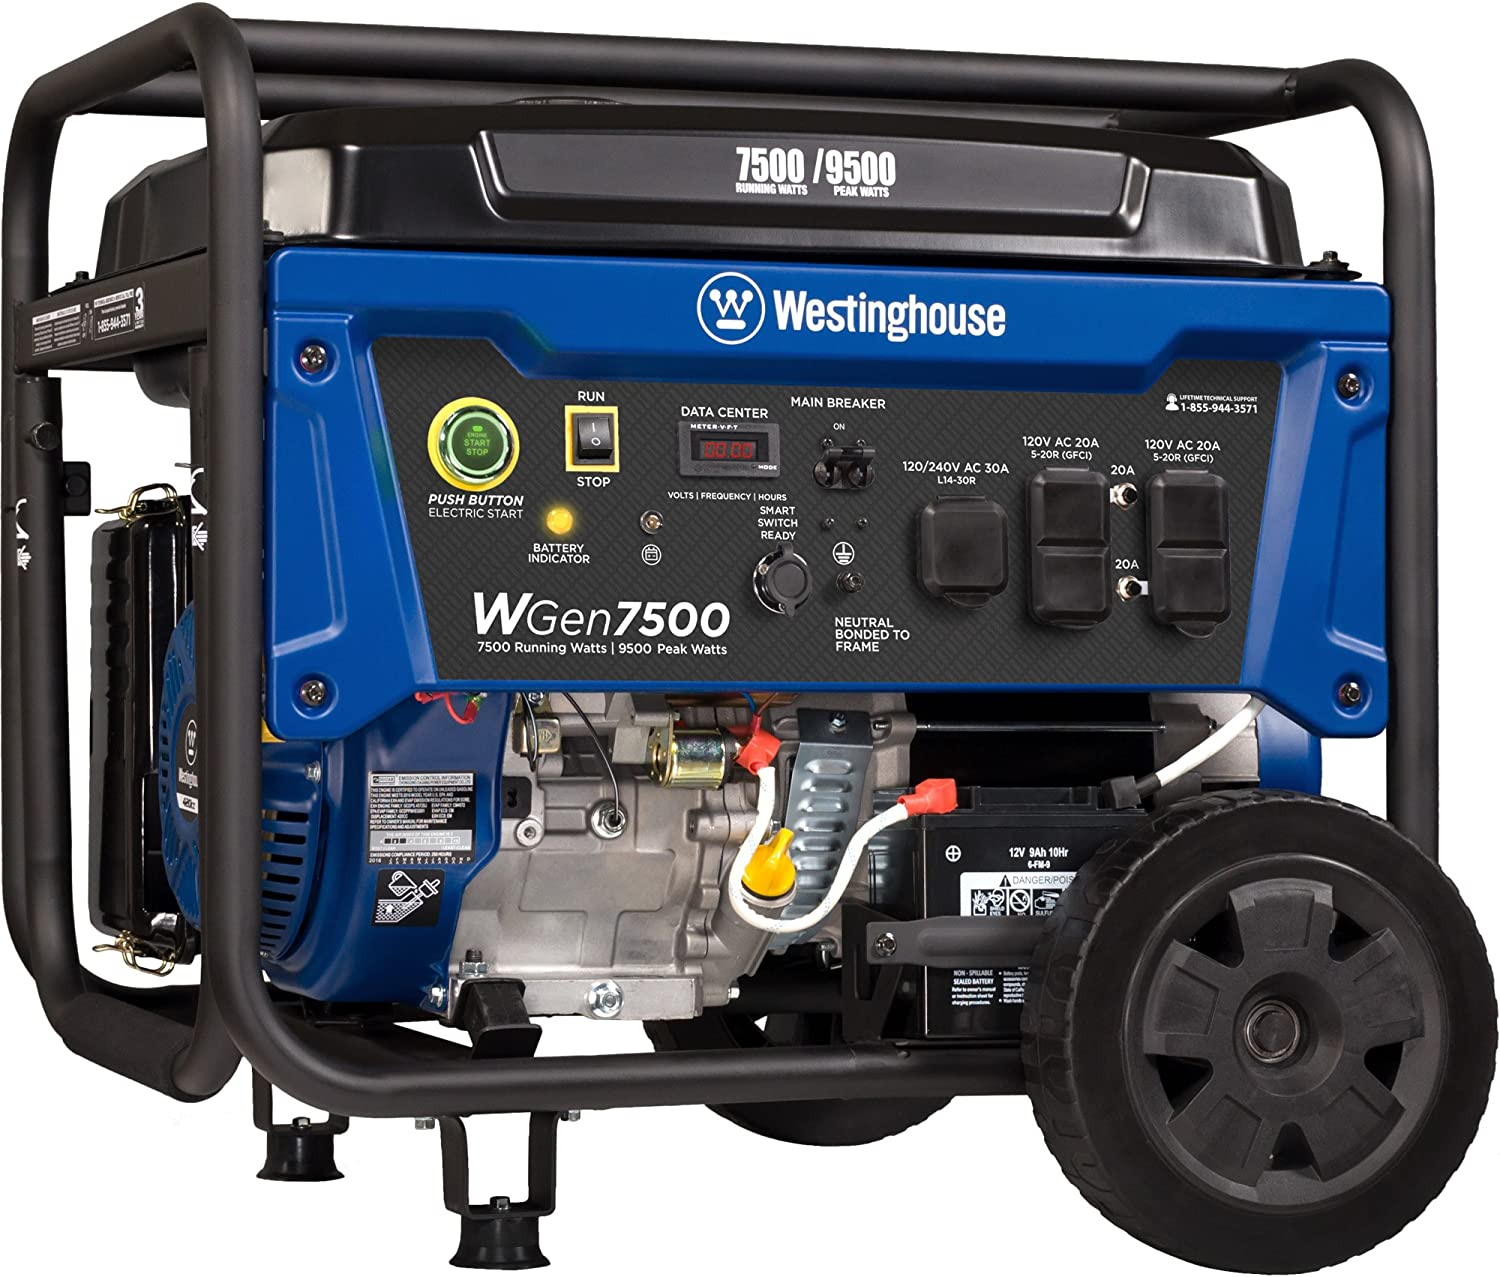 Image result for Westinghouse WGen7500 Portable Generator